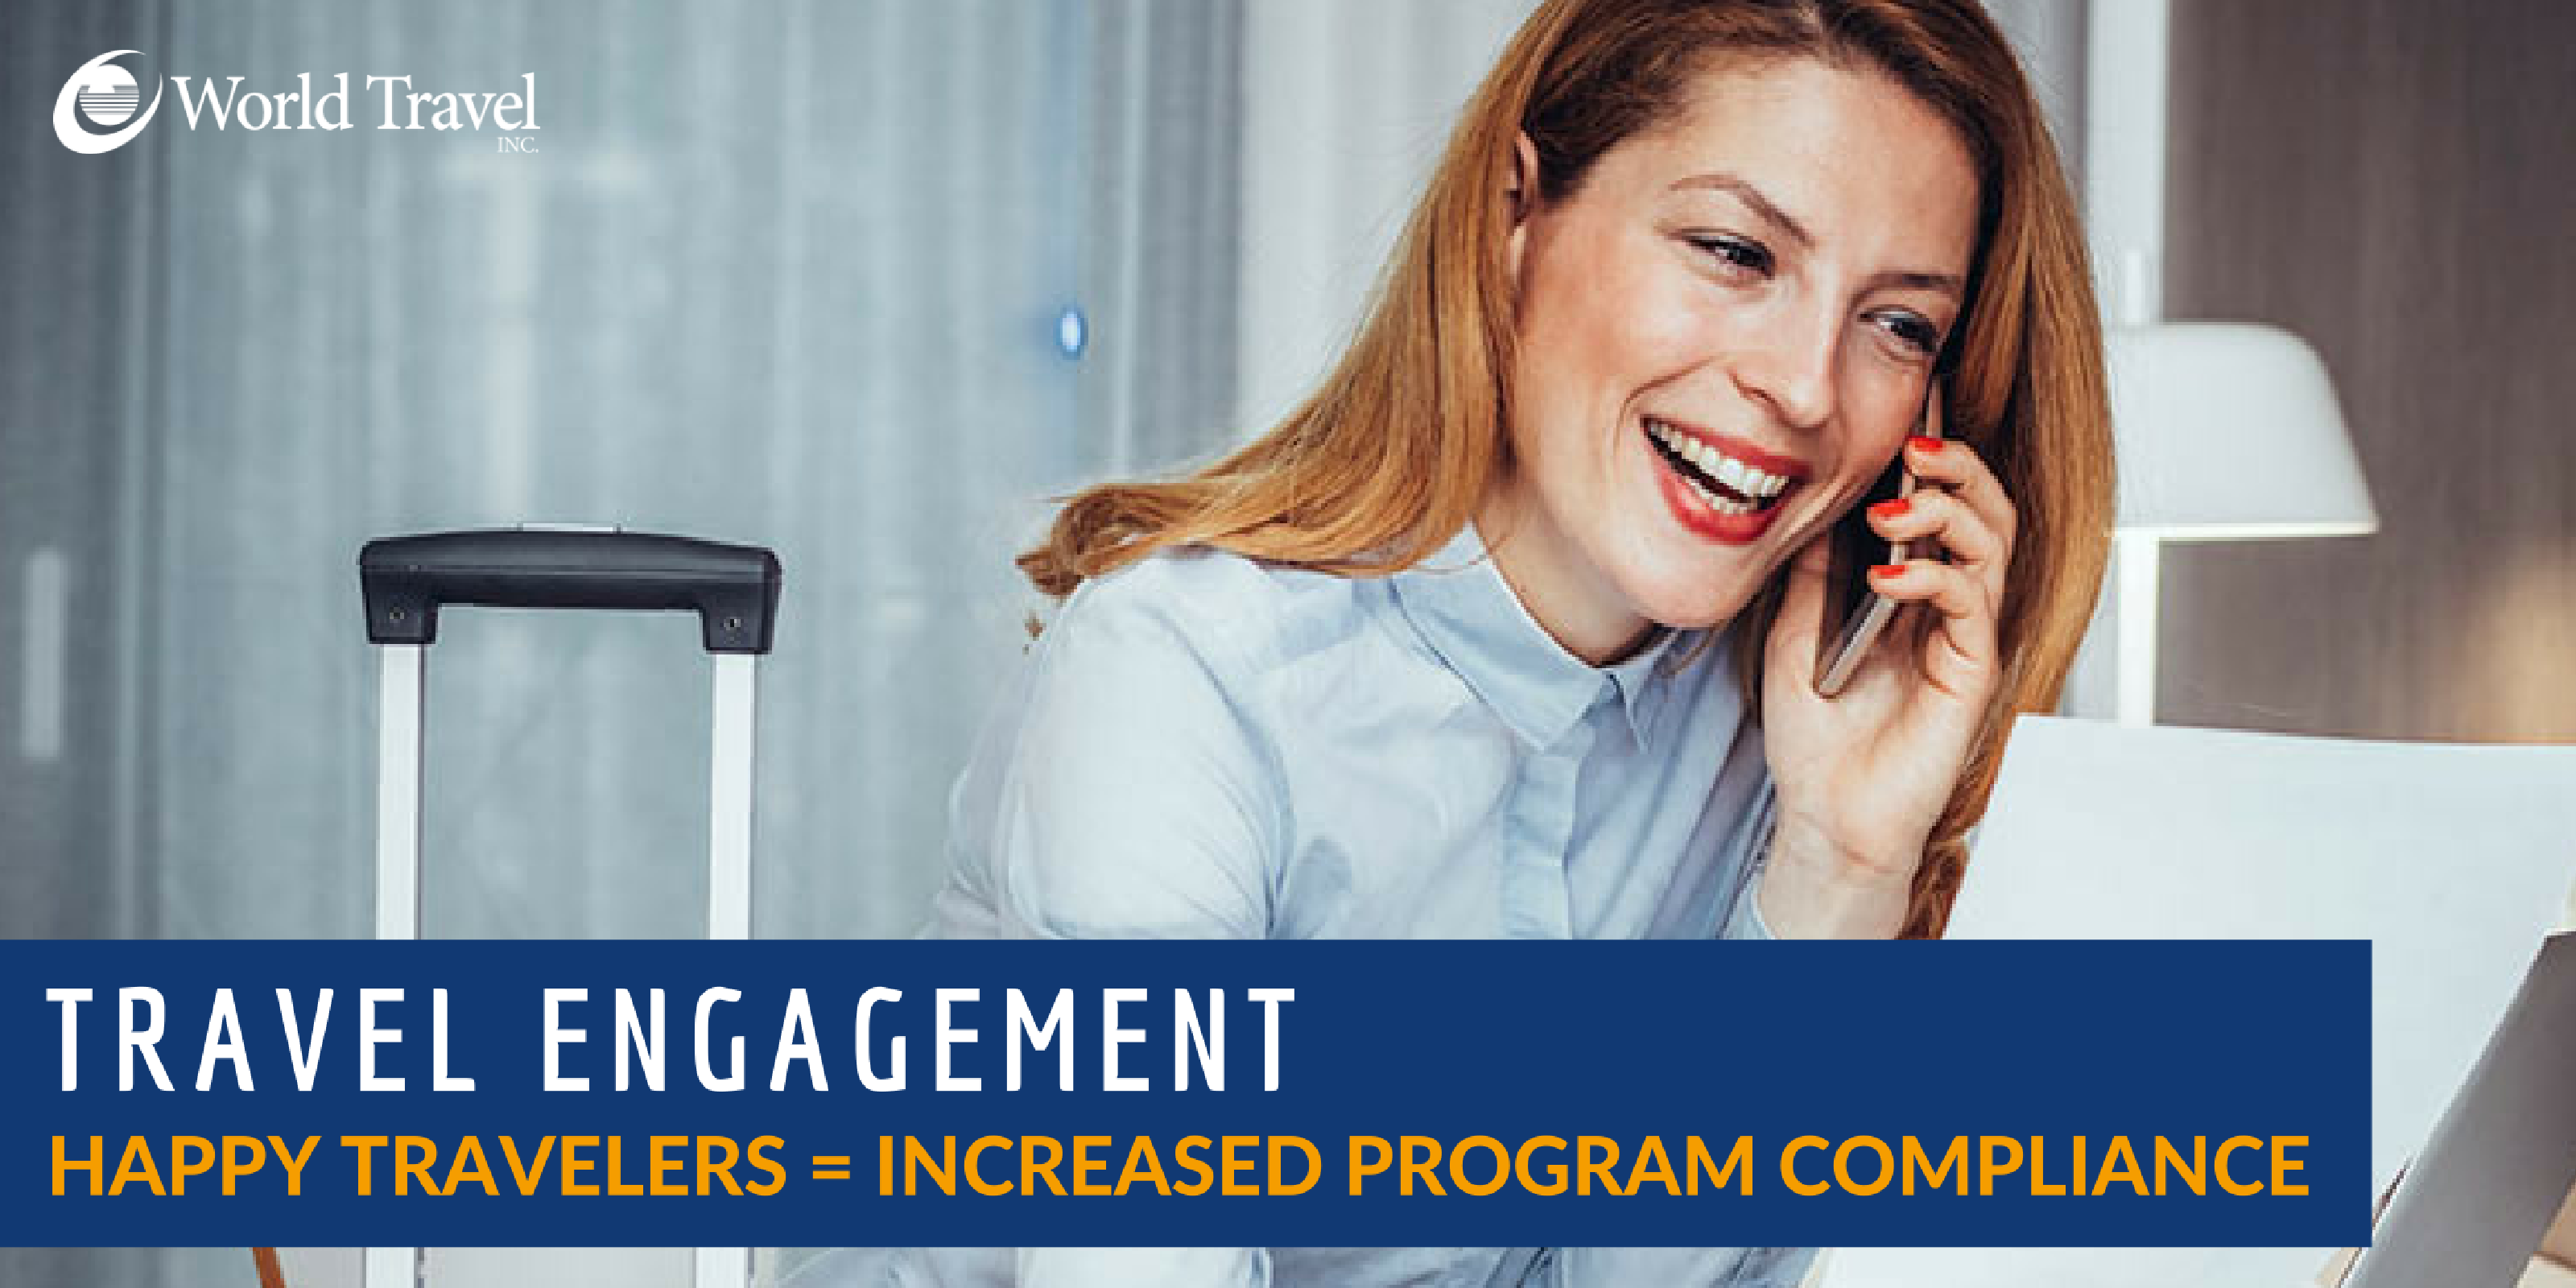 Happy Travelers = Increased Program Compliance